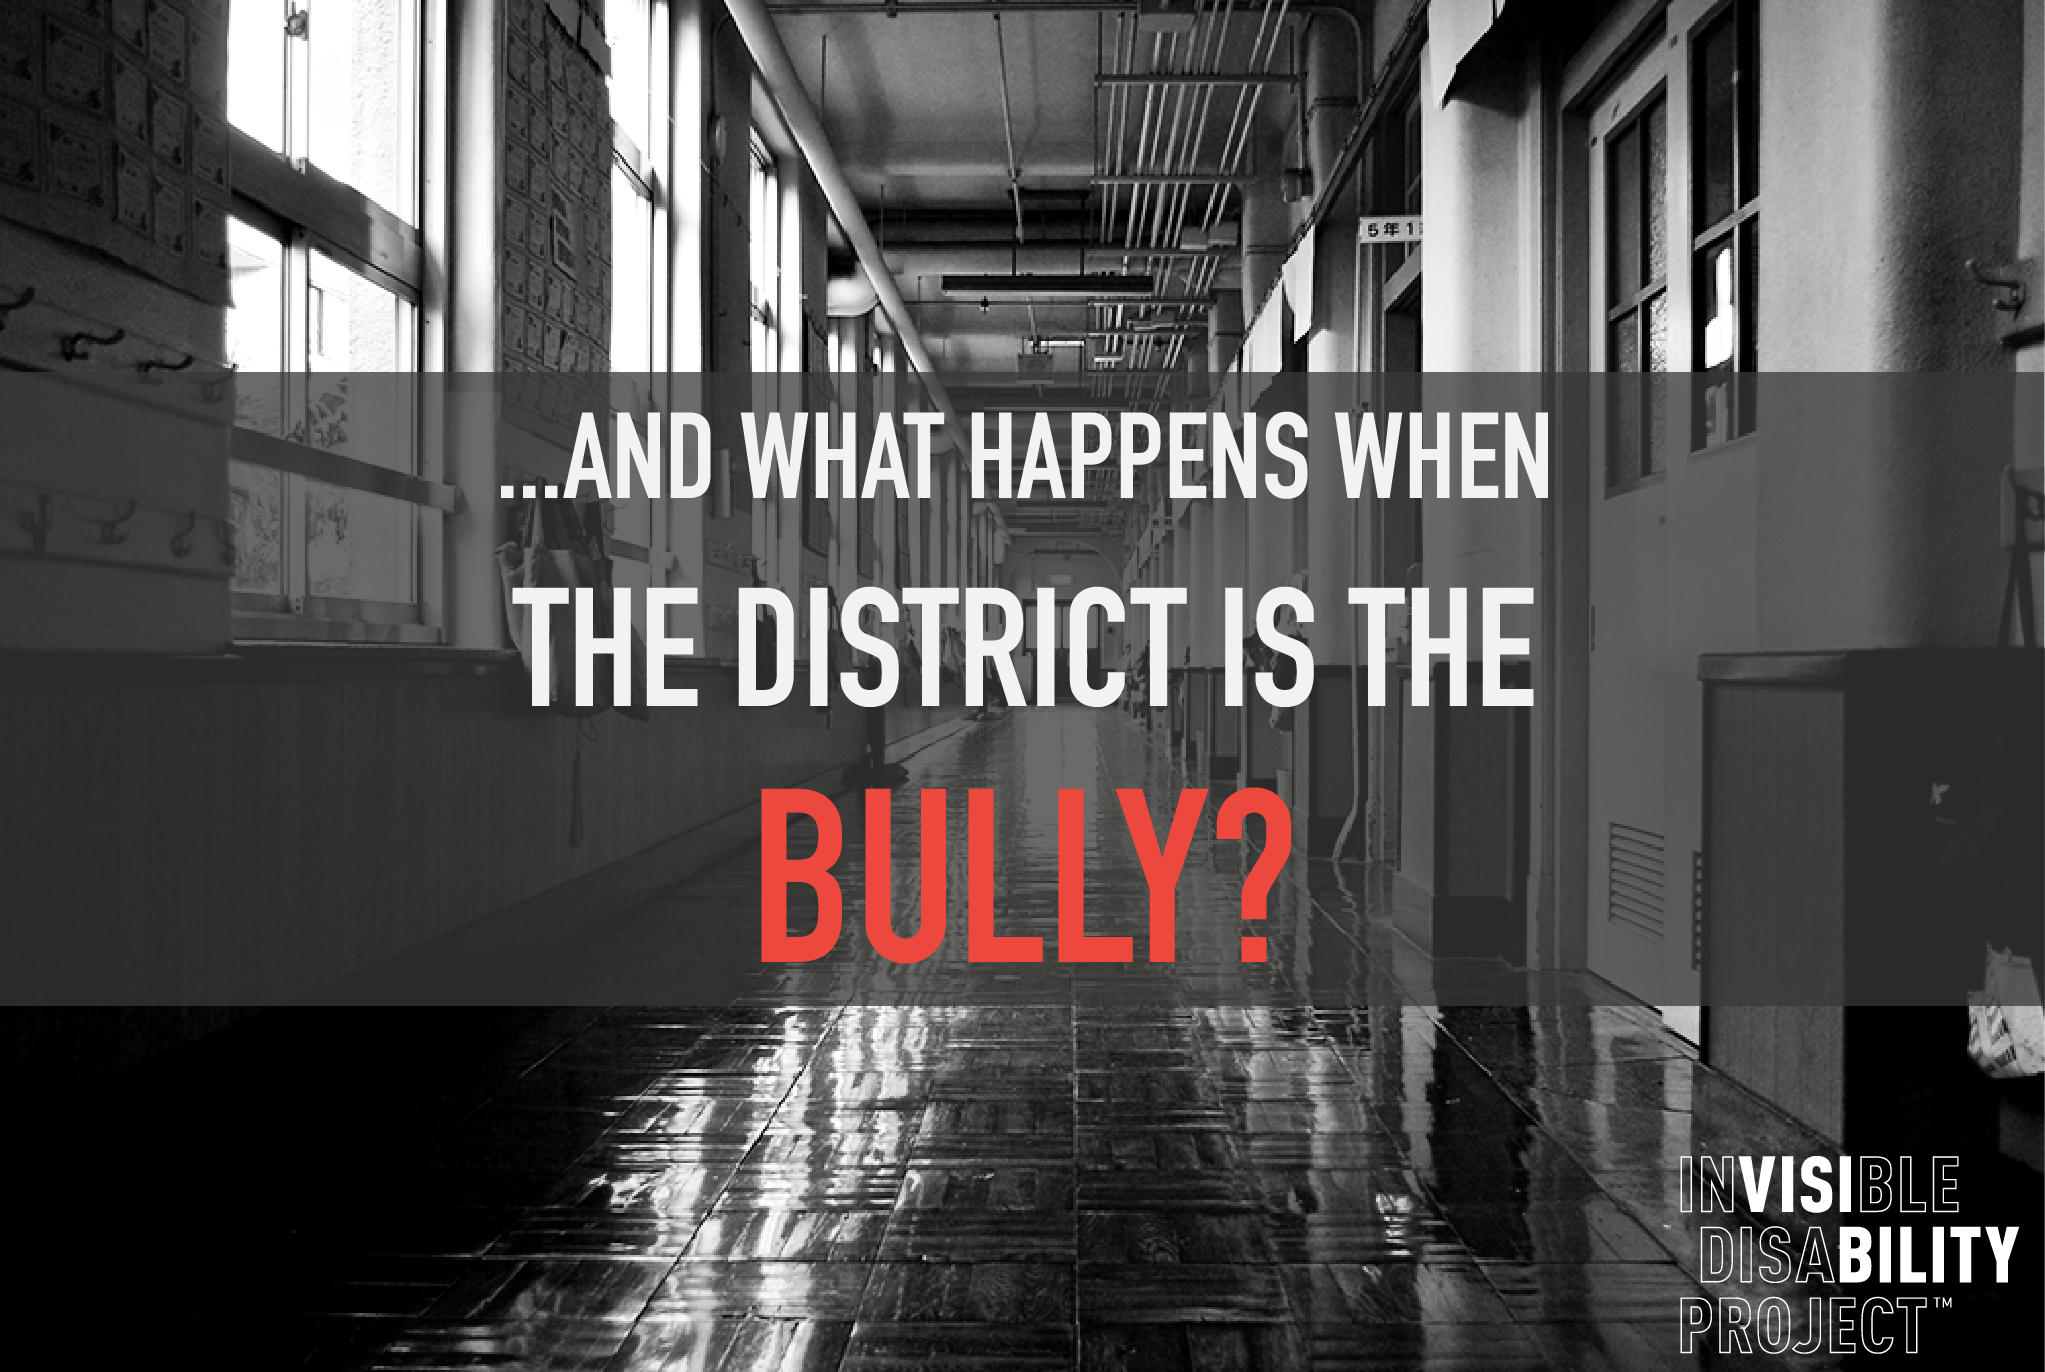 ... And what happens when the district is the bully?